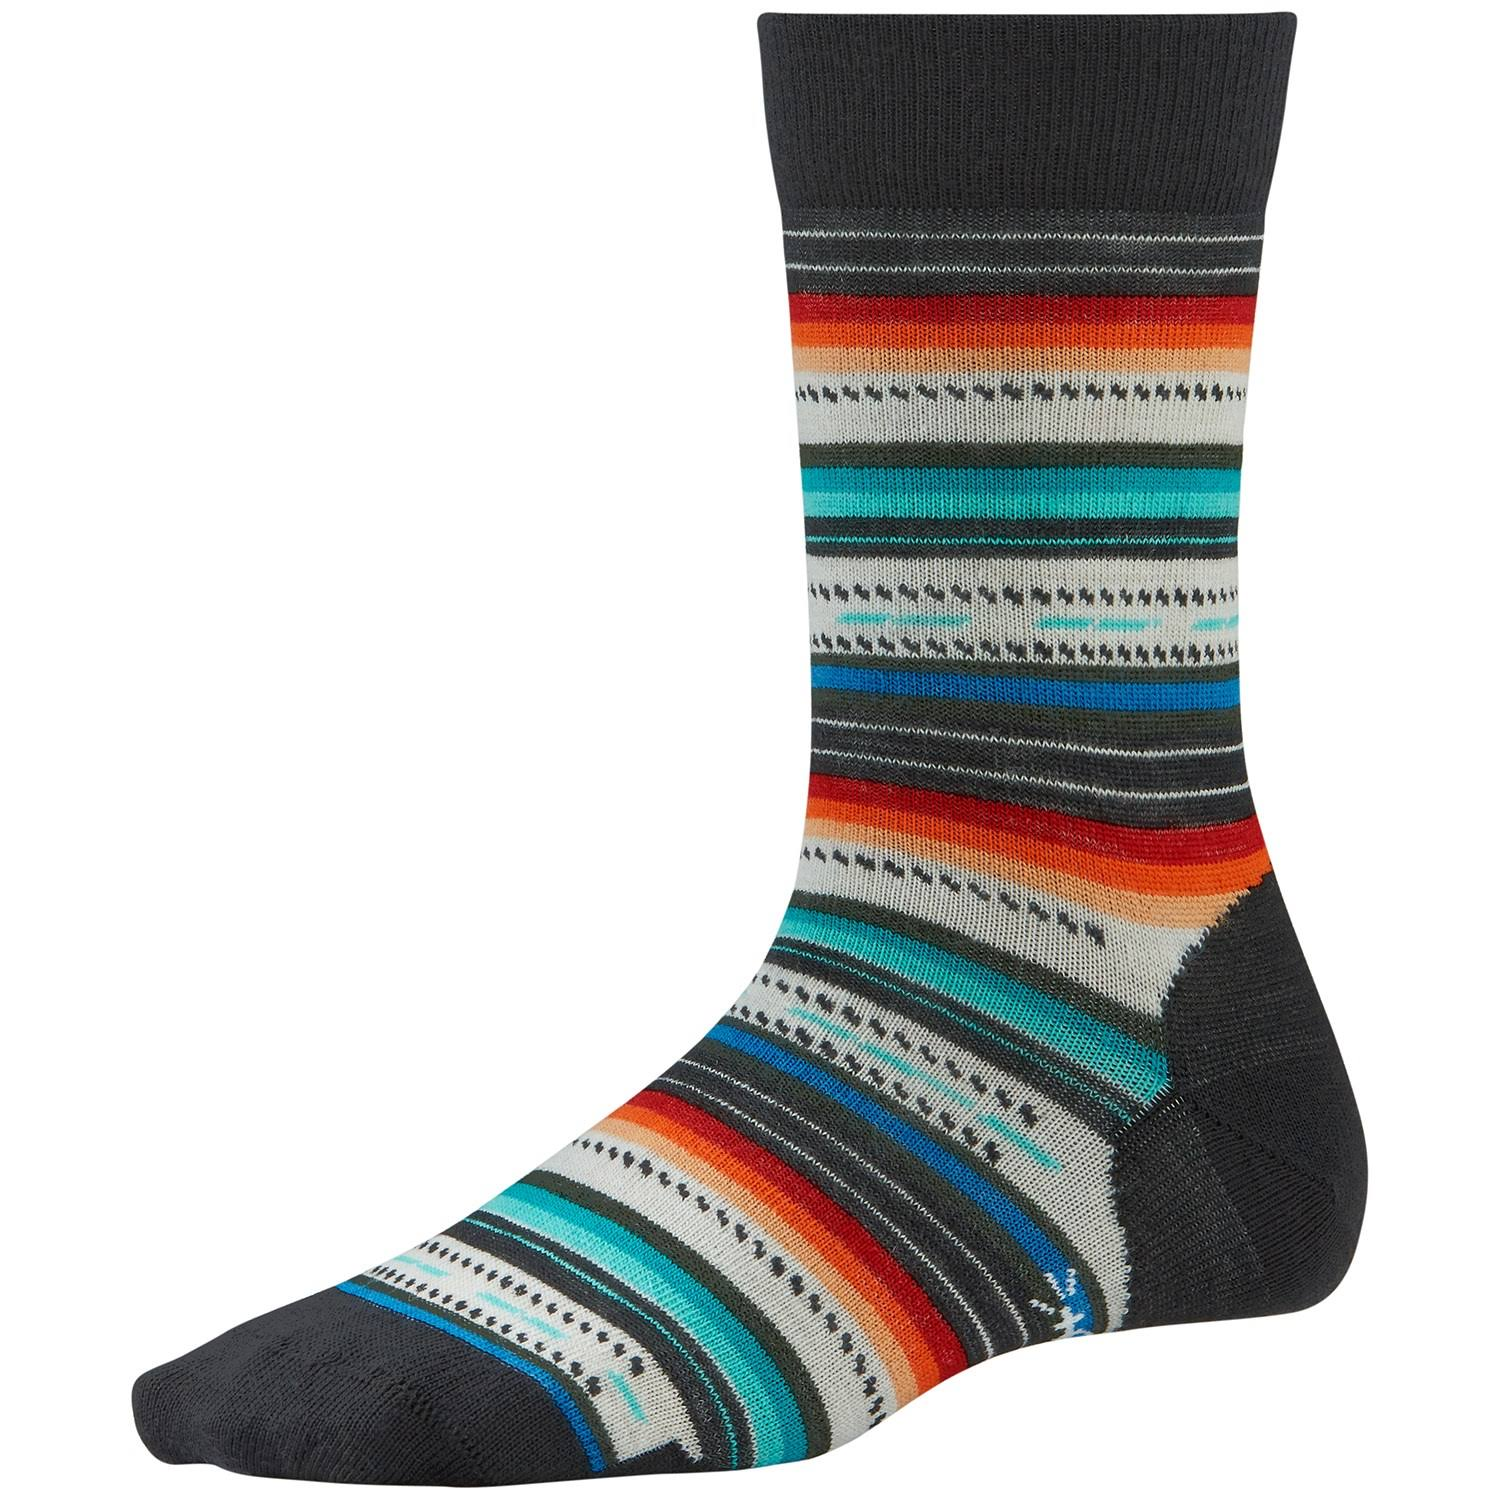 SmartWool Women's Margarita Socks - Black/Multi Stripe, Medium